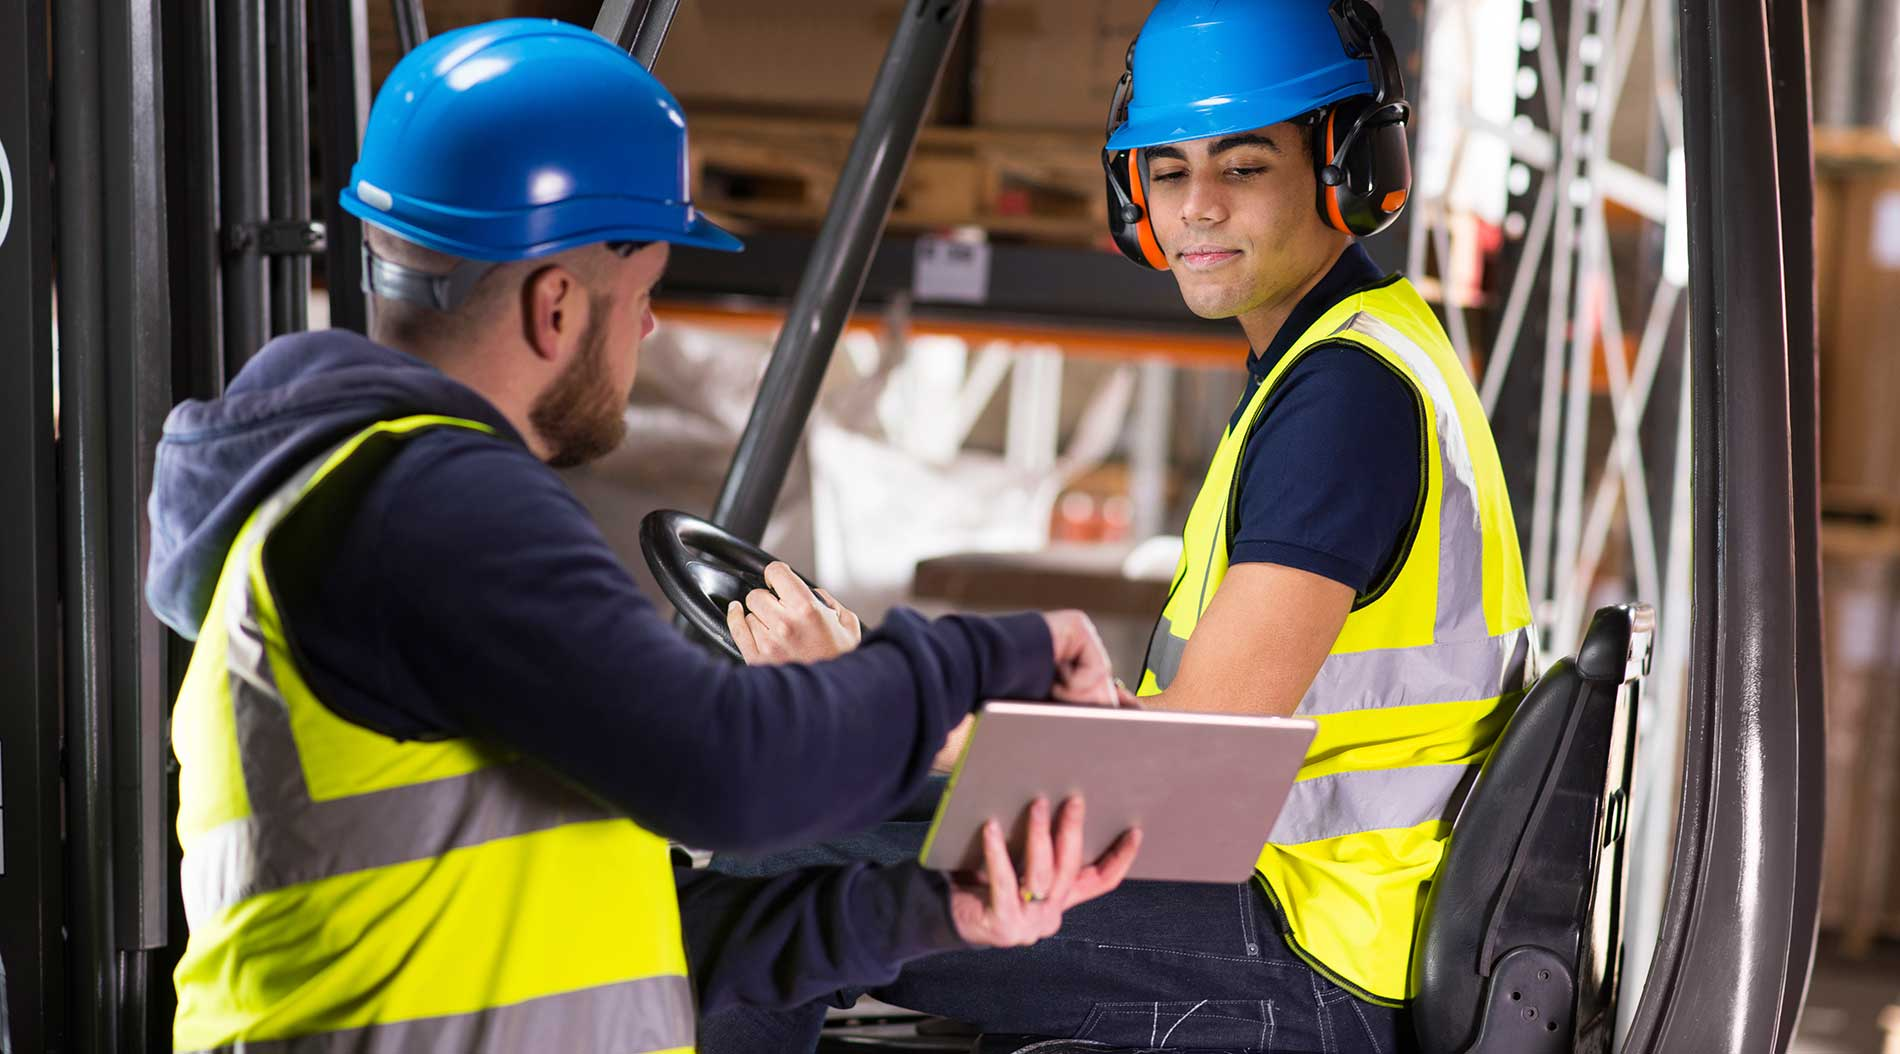 Why do my employees need forklift training?